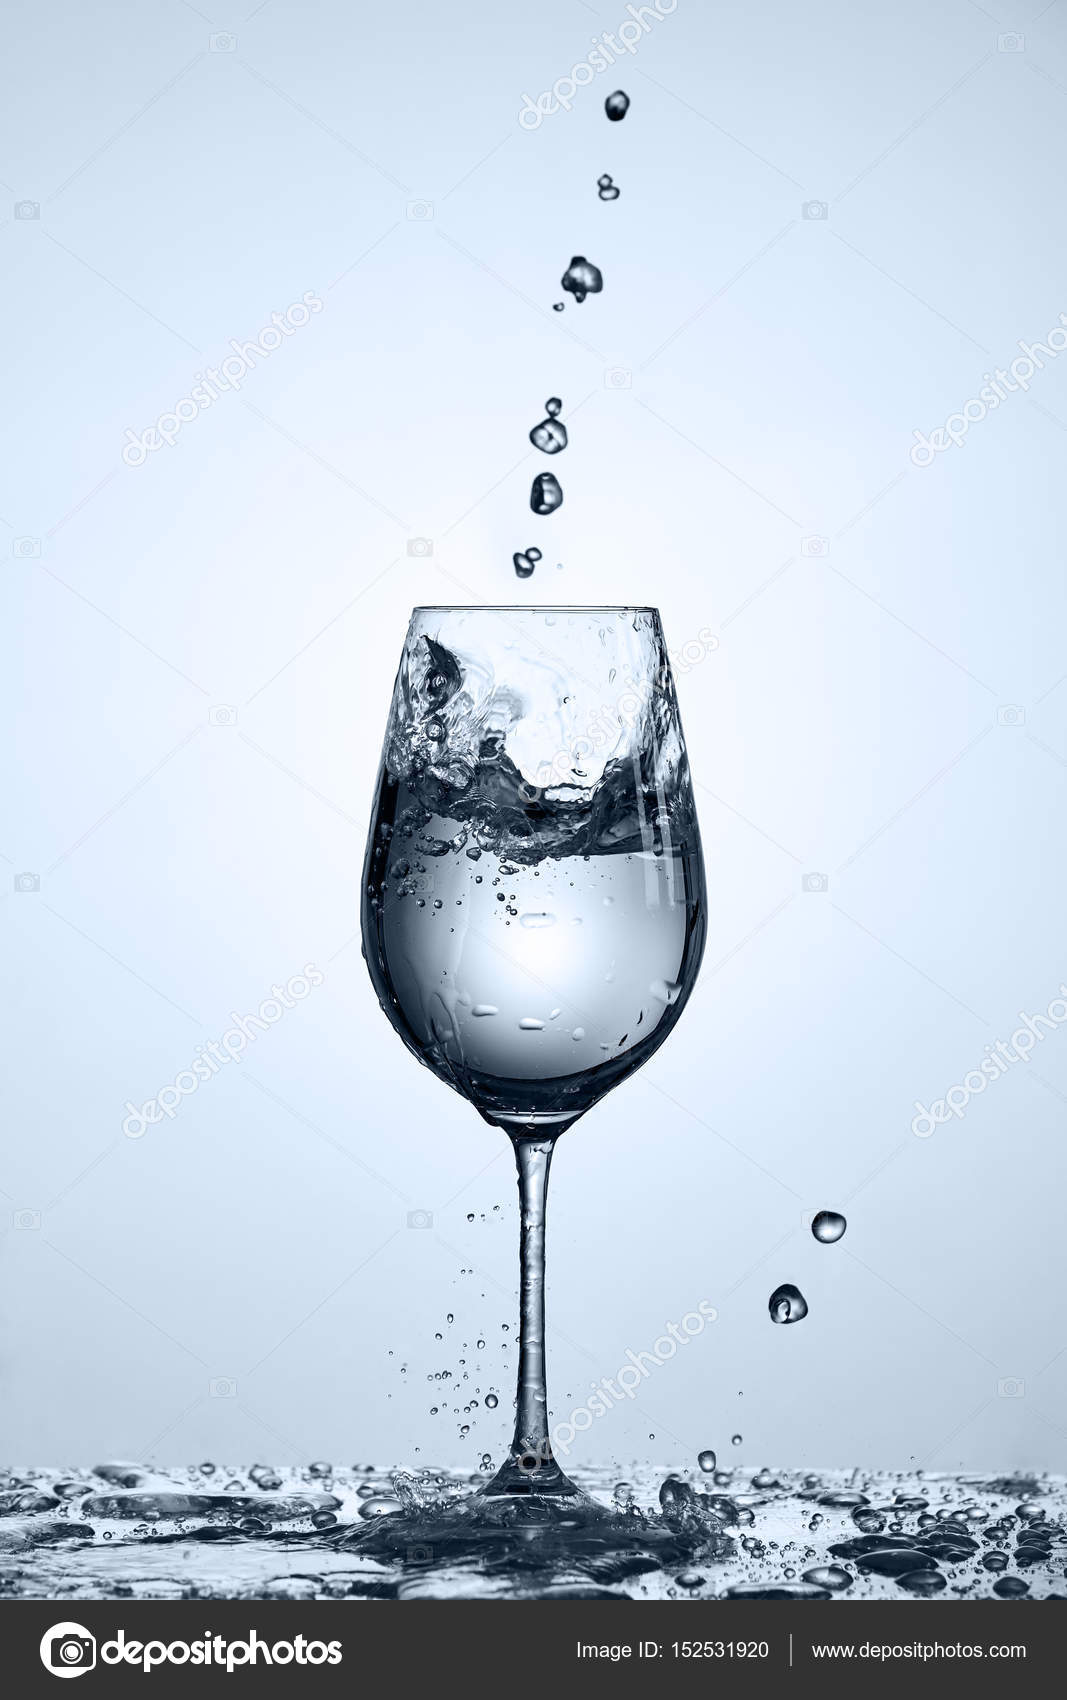 Transparent Water Pouring Into Wineglass While Standing On